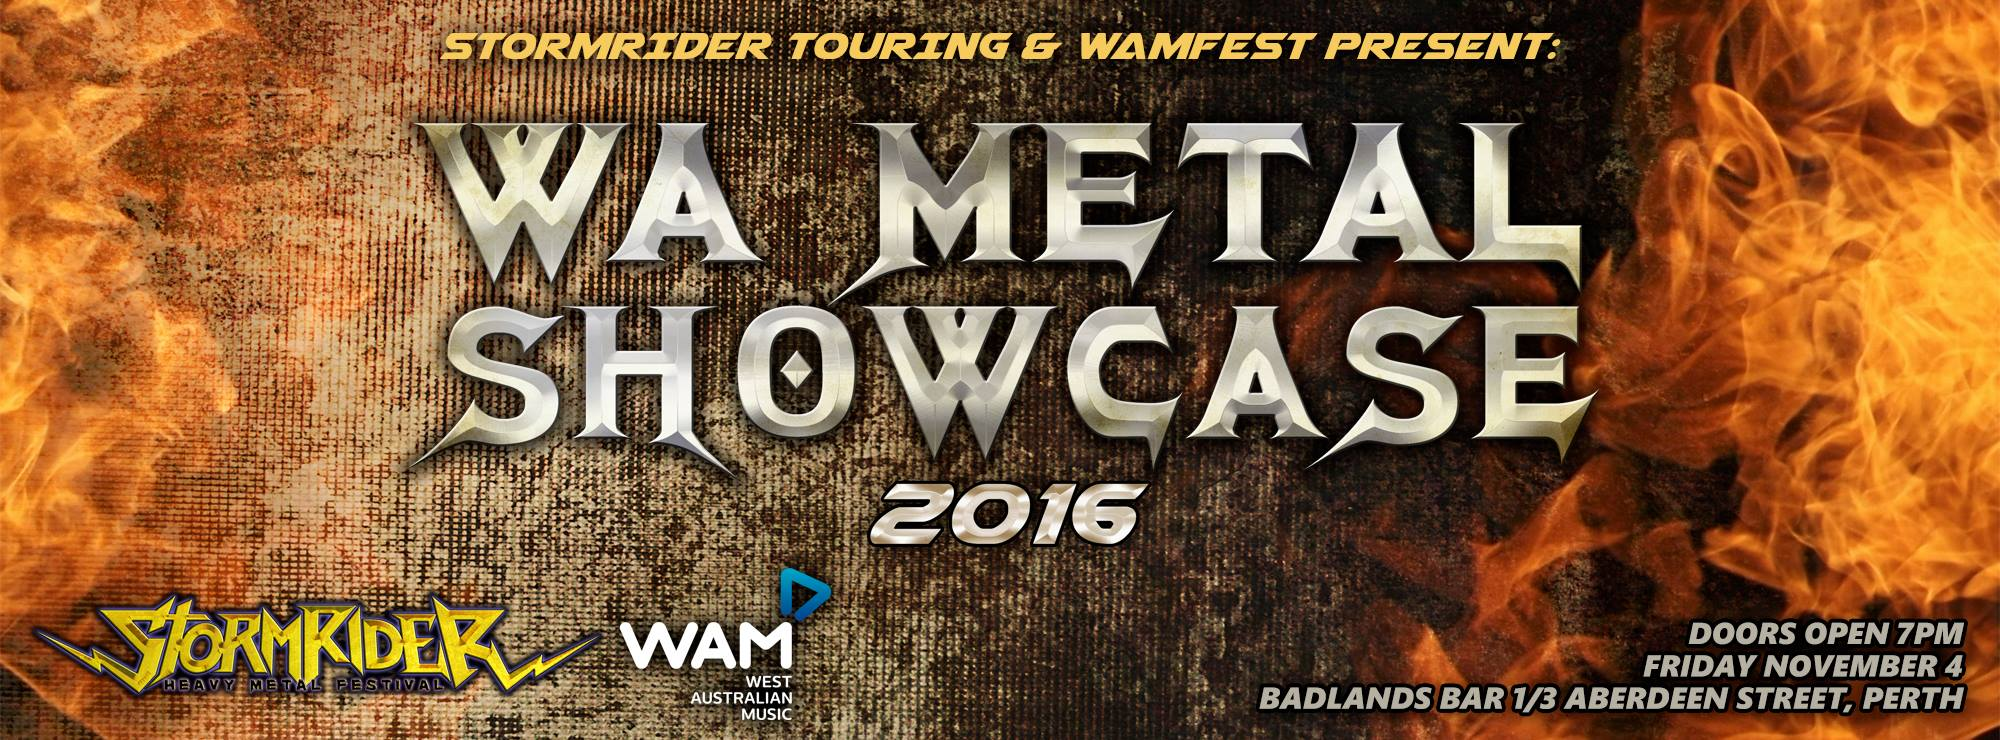 WA Metal Showcase – Claim The Throne, Silent Knight, Earth Rot, Sanzu, Suffer in Rot, Tempest Rising, Remission